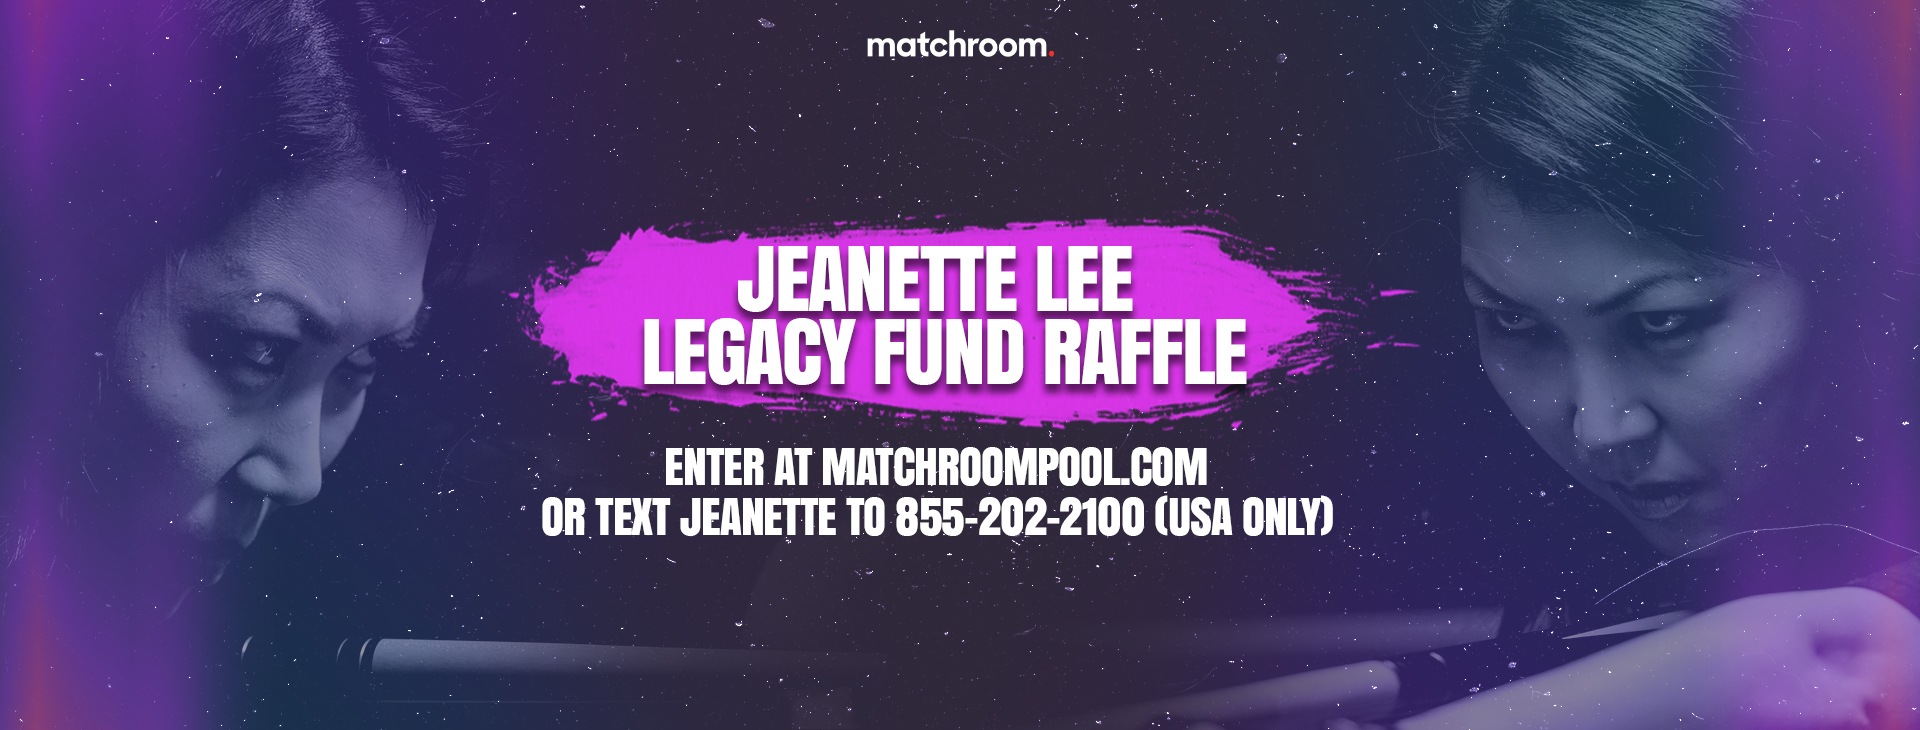 ENTER OUR JEANETTE LEE LEGACY FUND RAFFLE